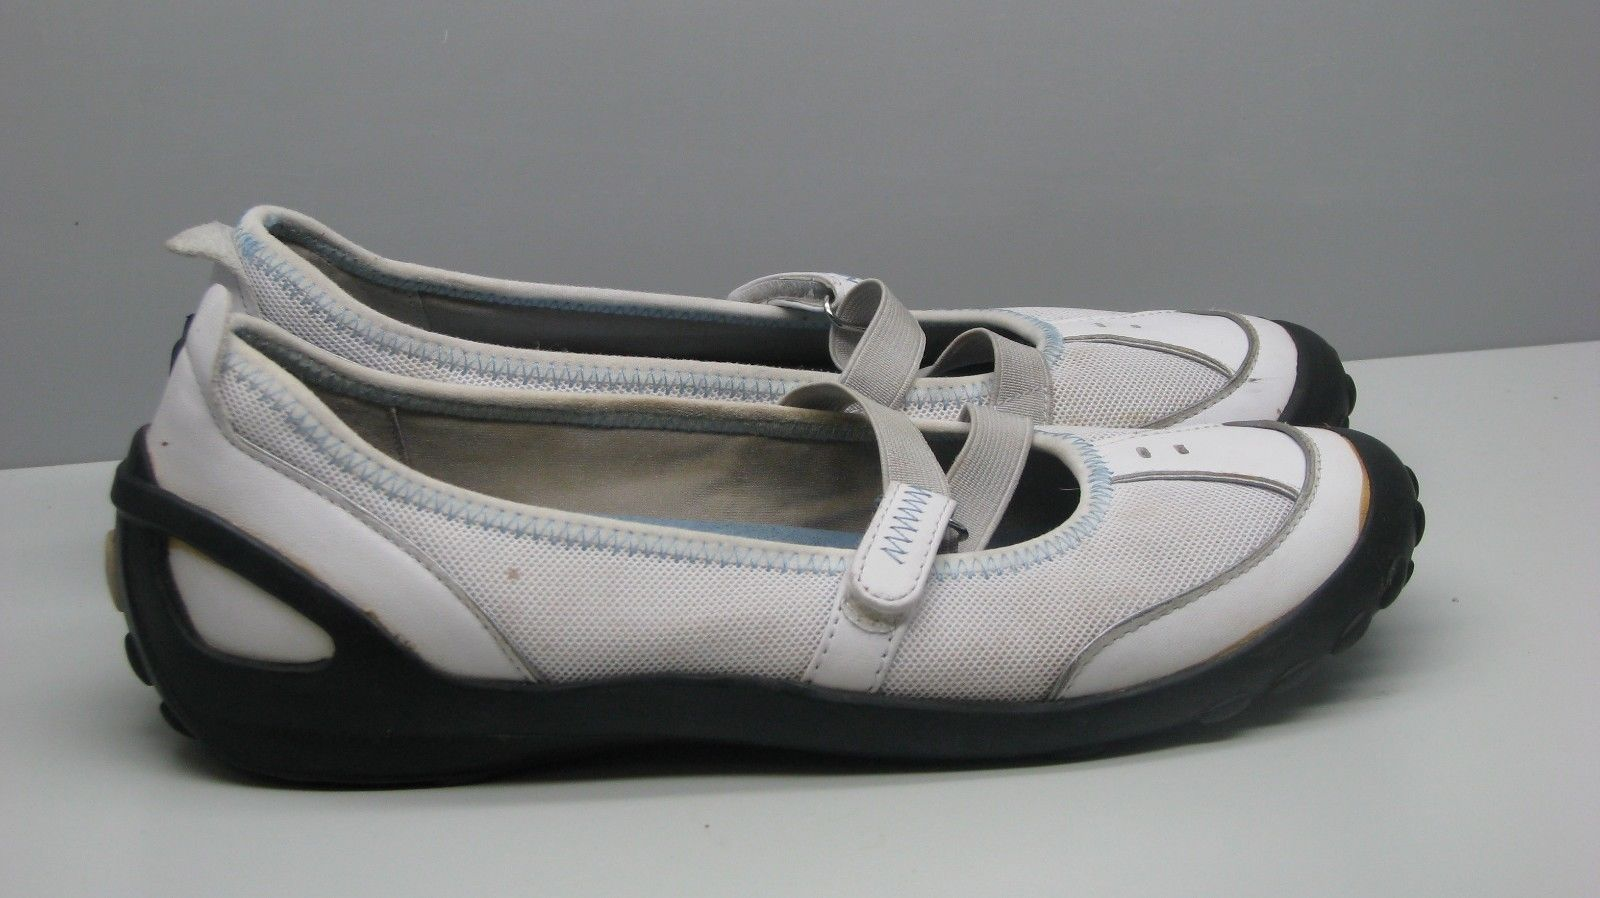 Clarks Privo SHOES White Leather & Fabric Woman's 8 M FLATS